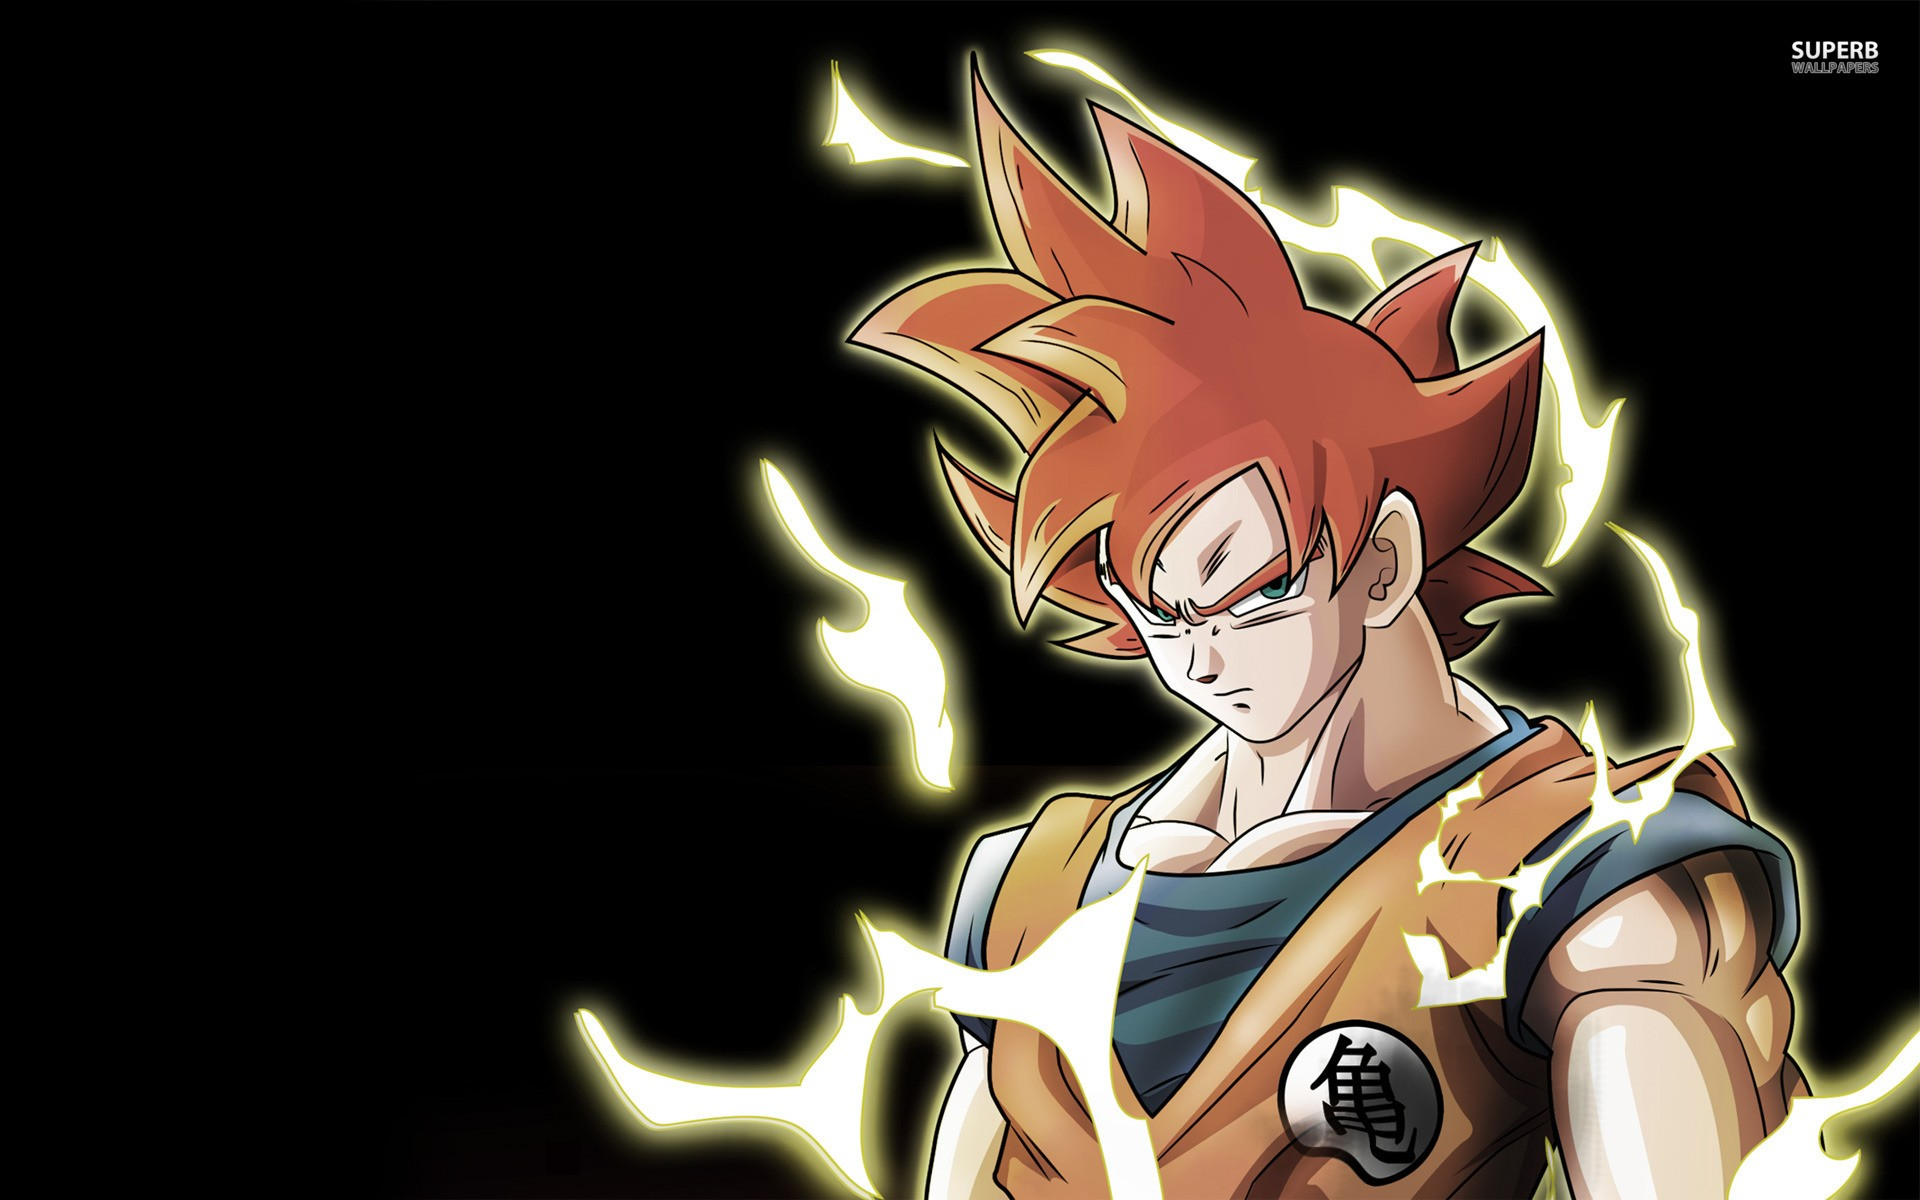 Dragon Ball Z Wallpaper Download Free Amazing High Resolution